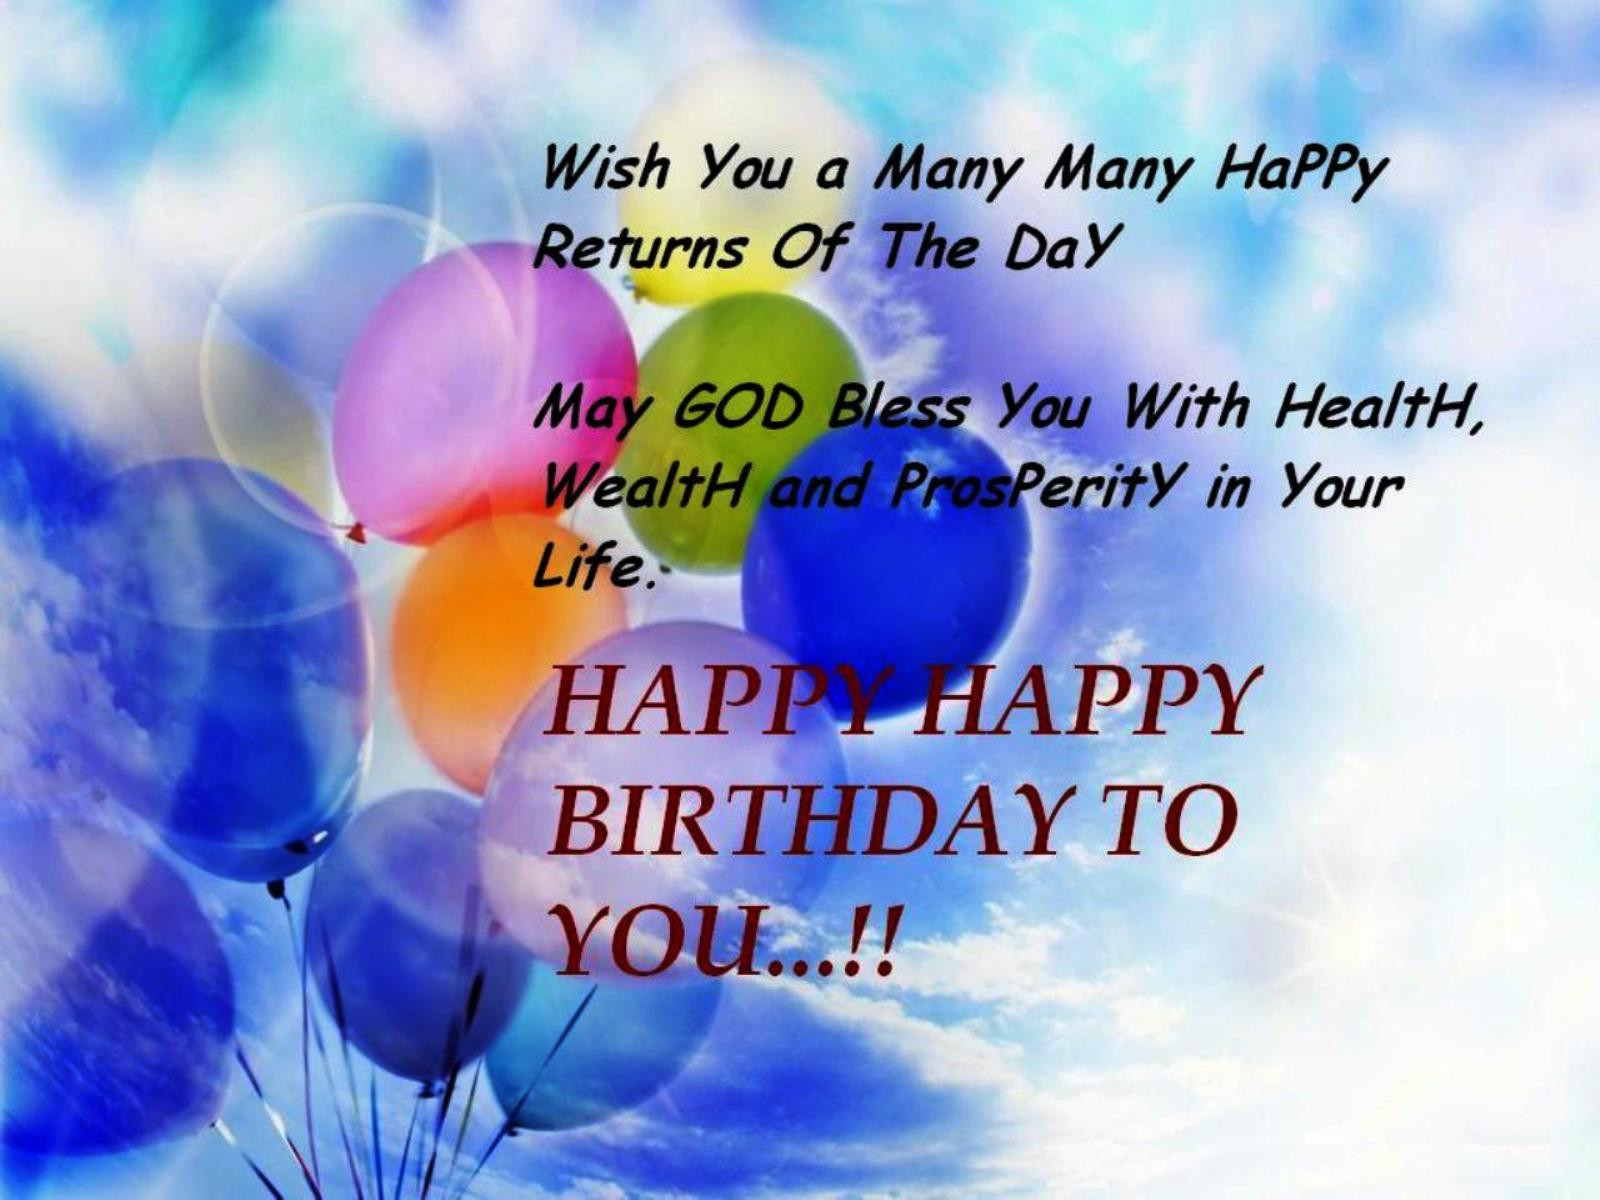 Birthday Wish Quotes  50 Birthday Wishes and Messages with Quotes